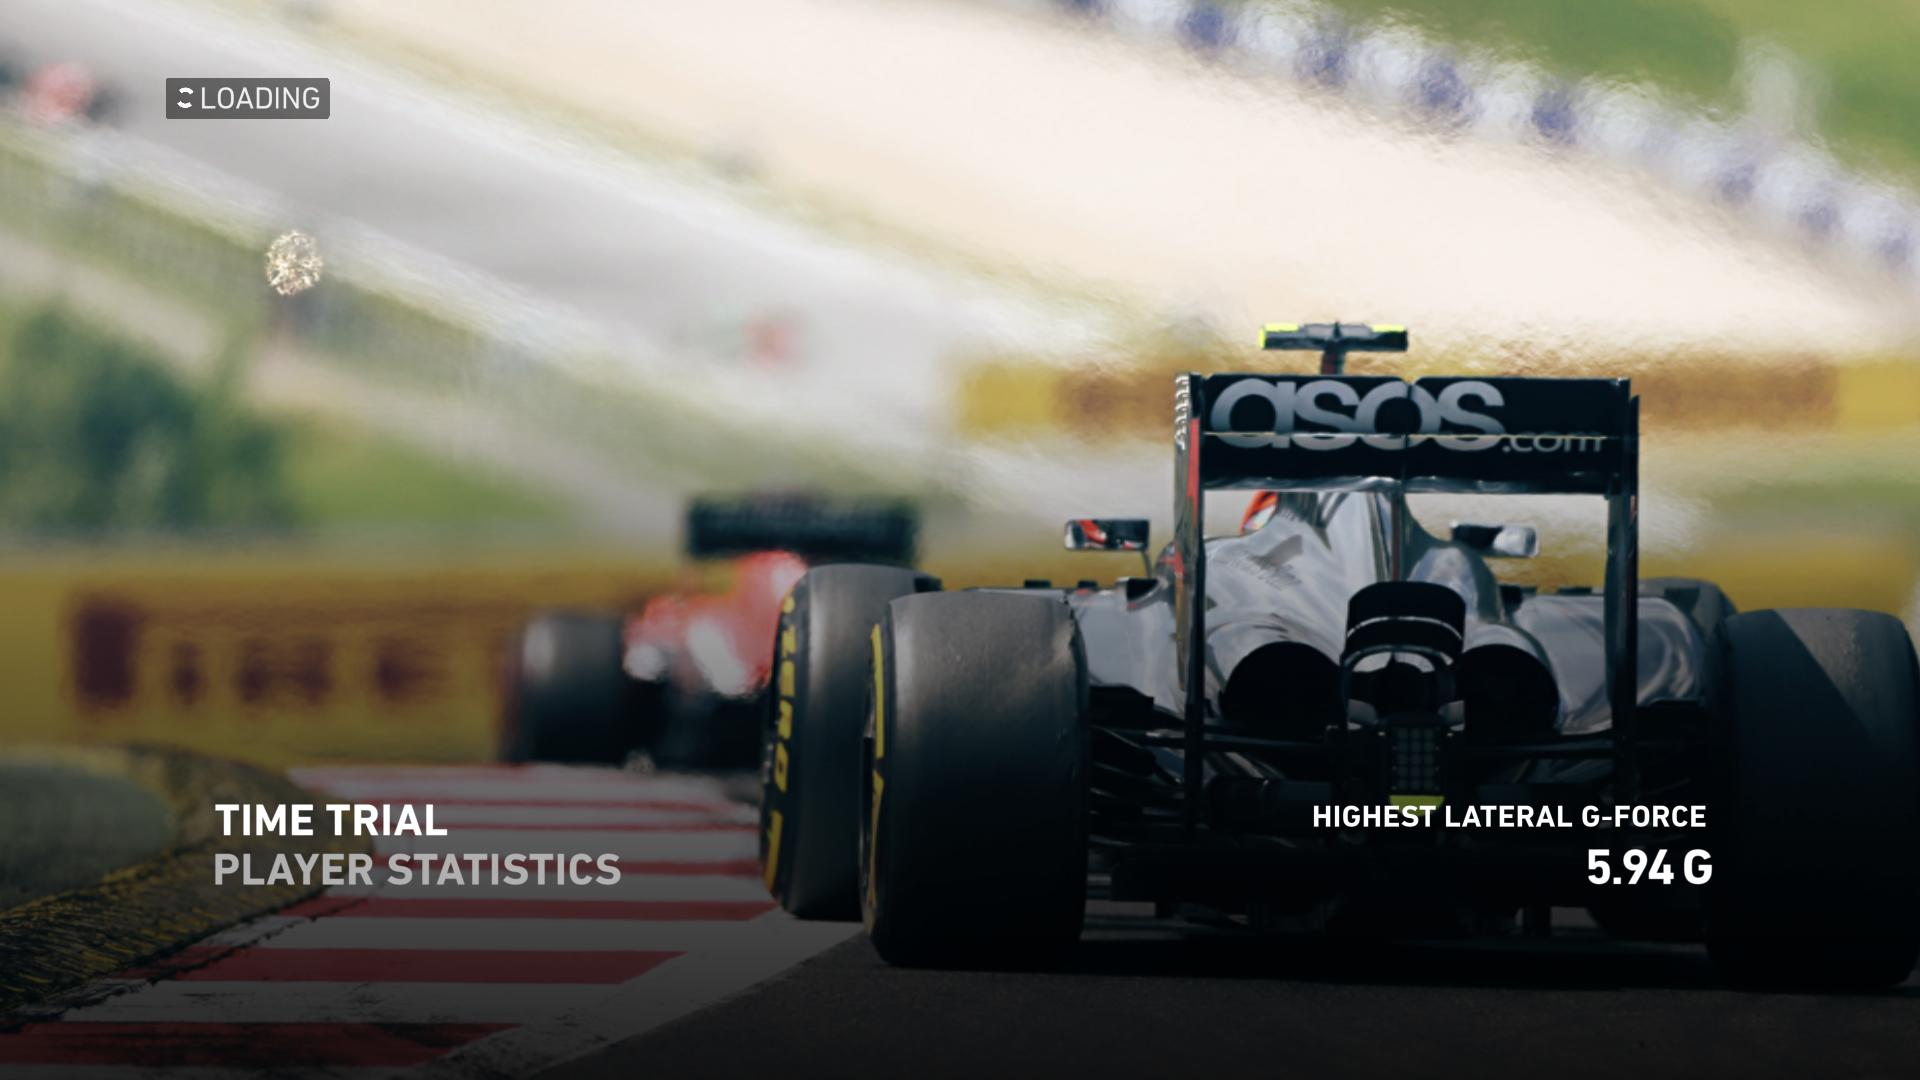 F1 2014 Loading Screen #30